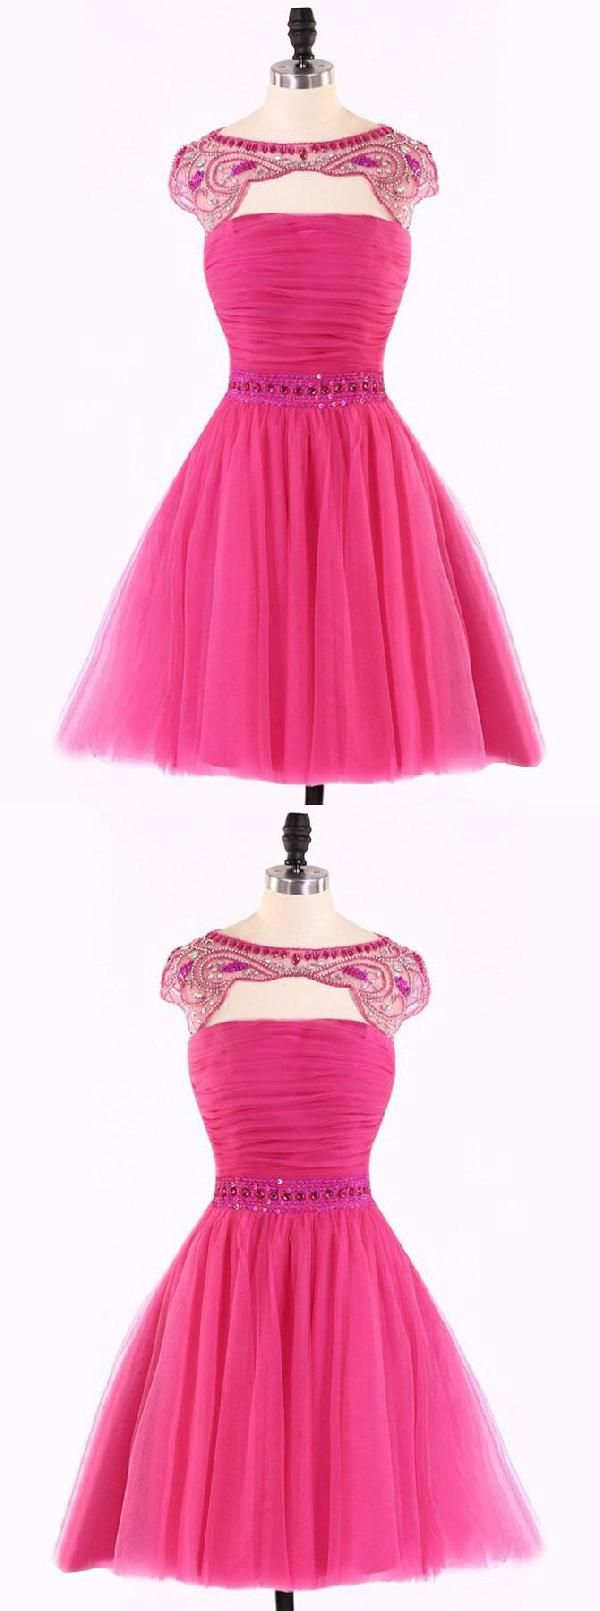 3b076bc942f Custom Made Delightful Prom Dresses Short Cute A-line Hot Pink Beads Short  Homecoming Dress With Open Back Homecoming Dresses